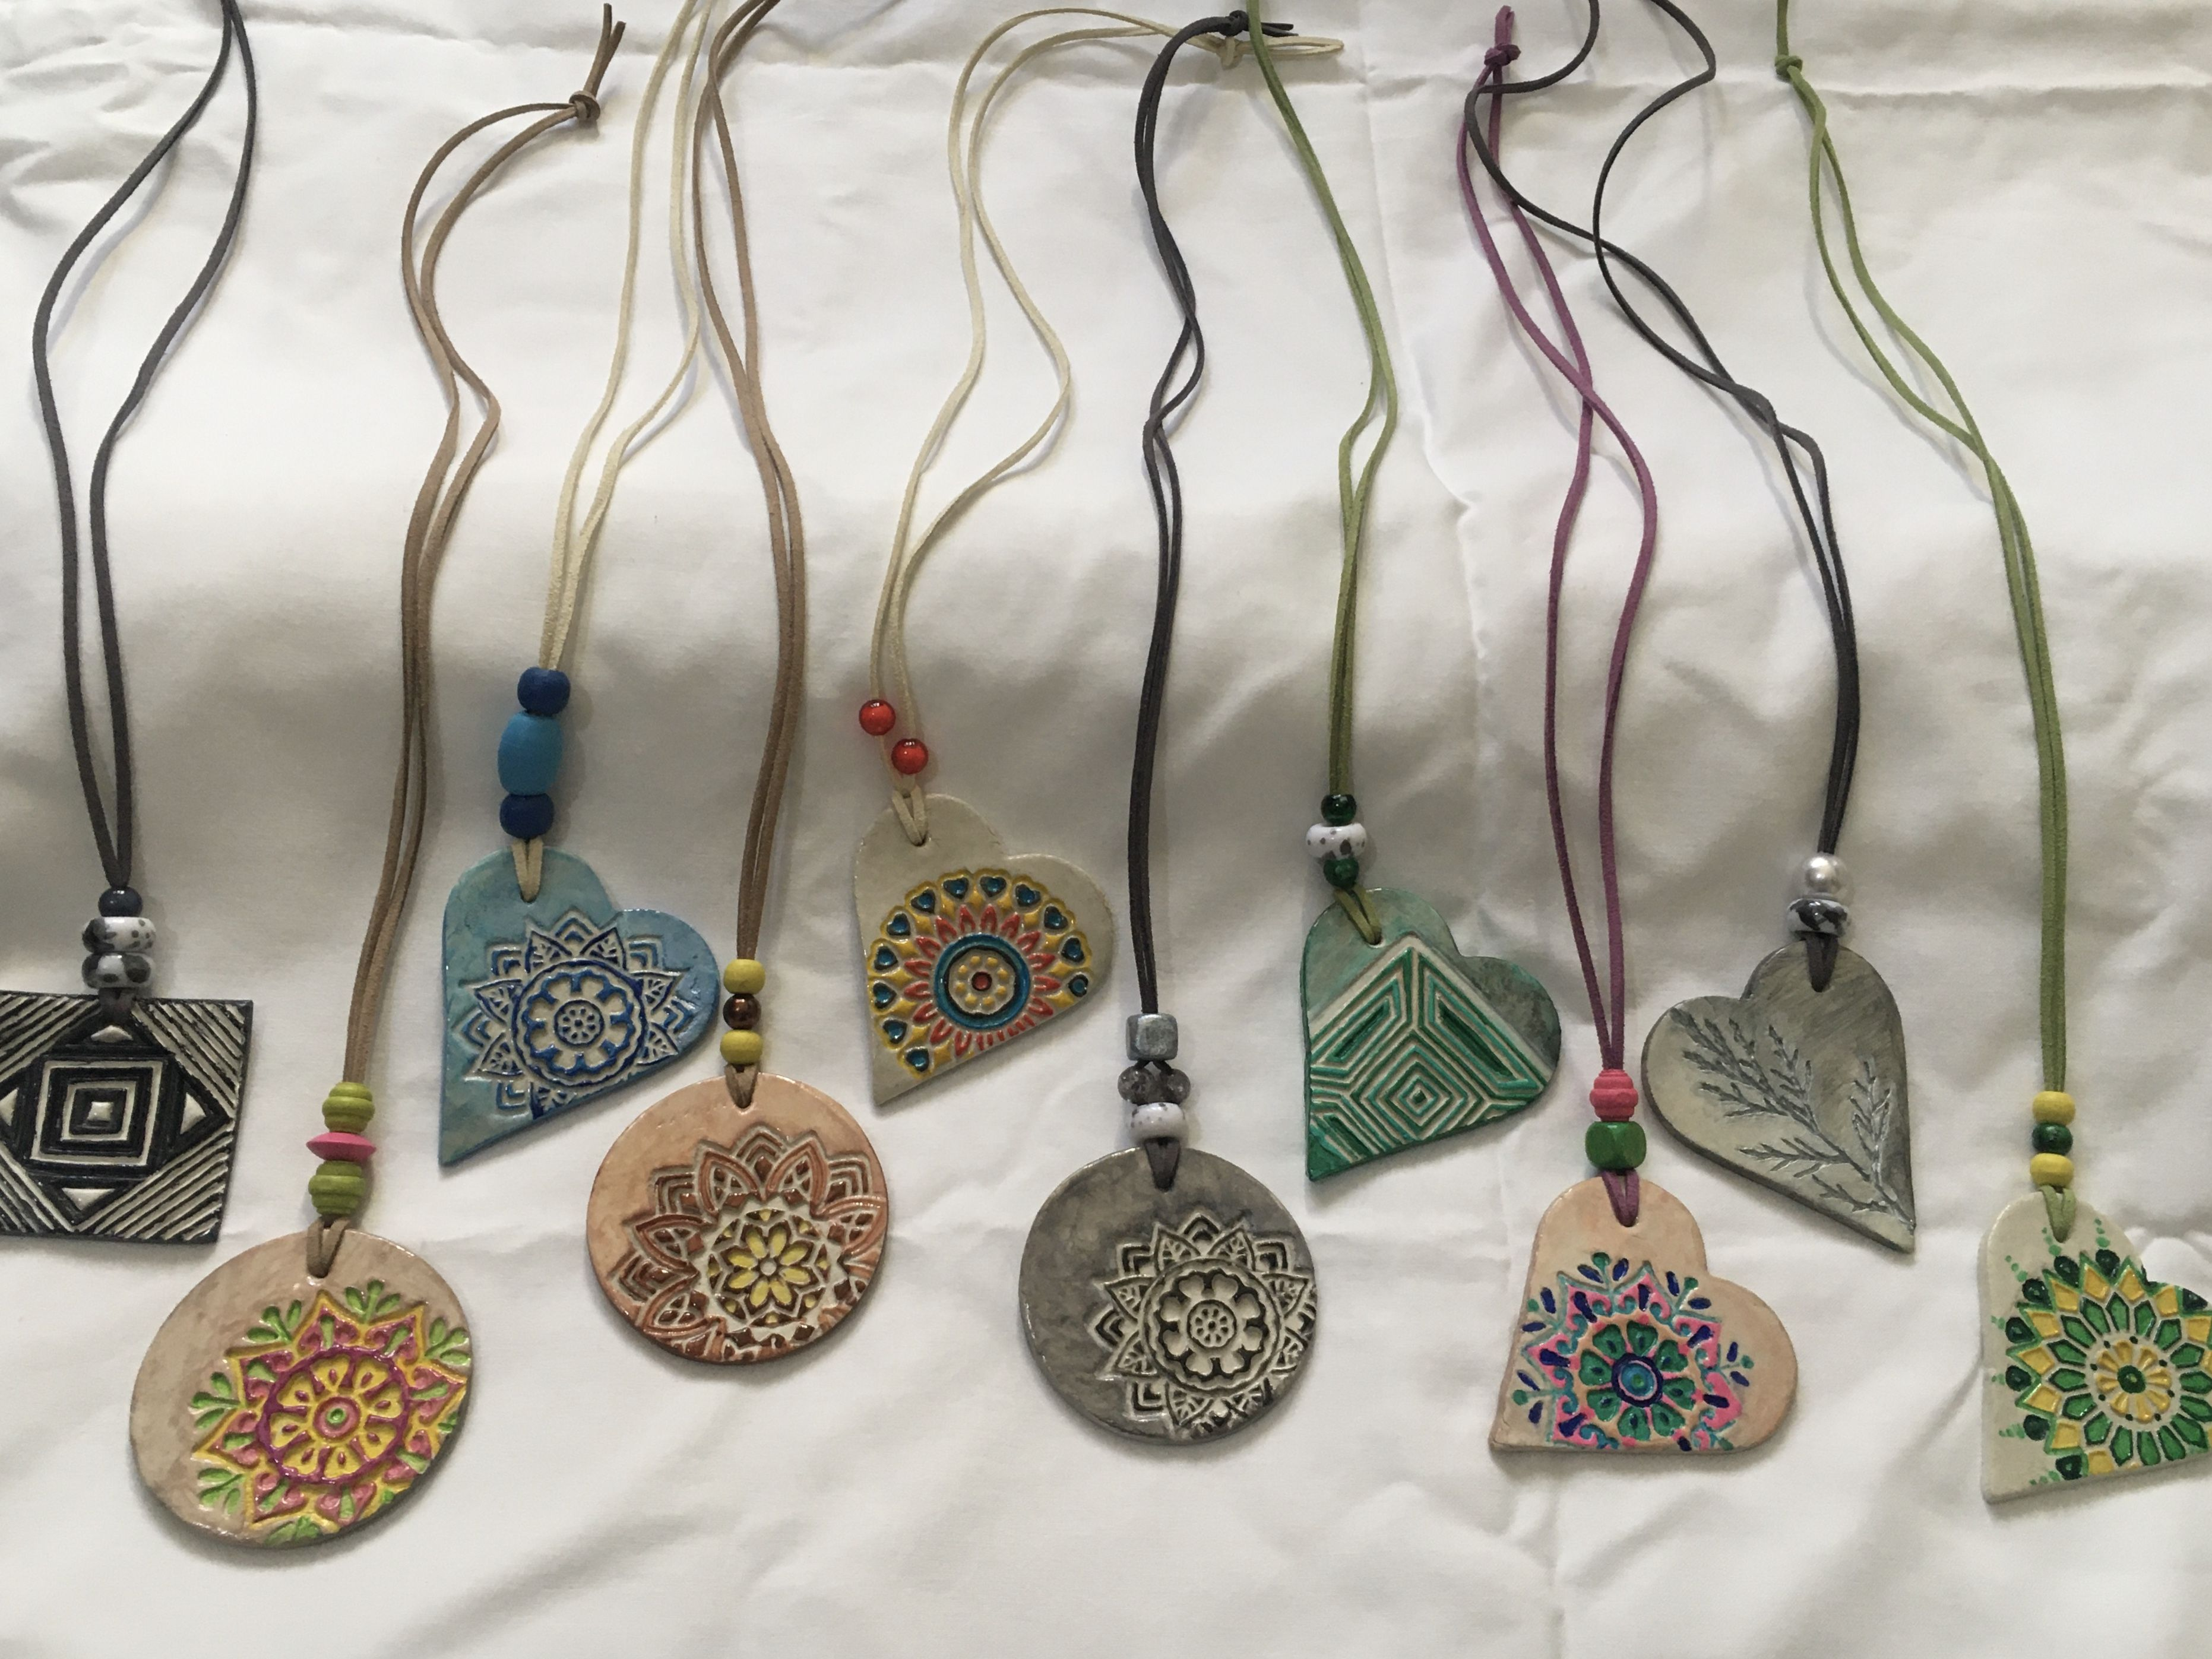 Handmade Hand Painted Pendants Air Dry Clay Projects Clay Jewelry Diy Diy Air Dry Clay